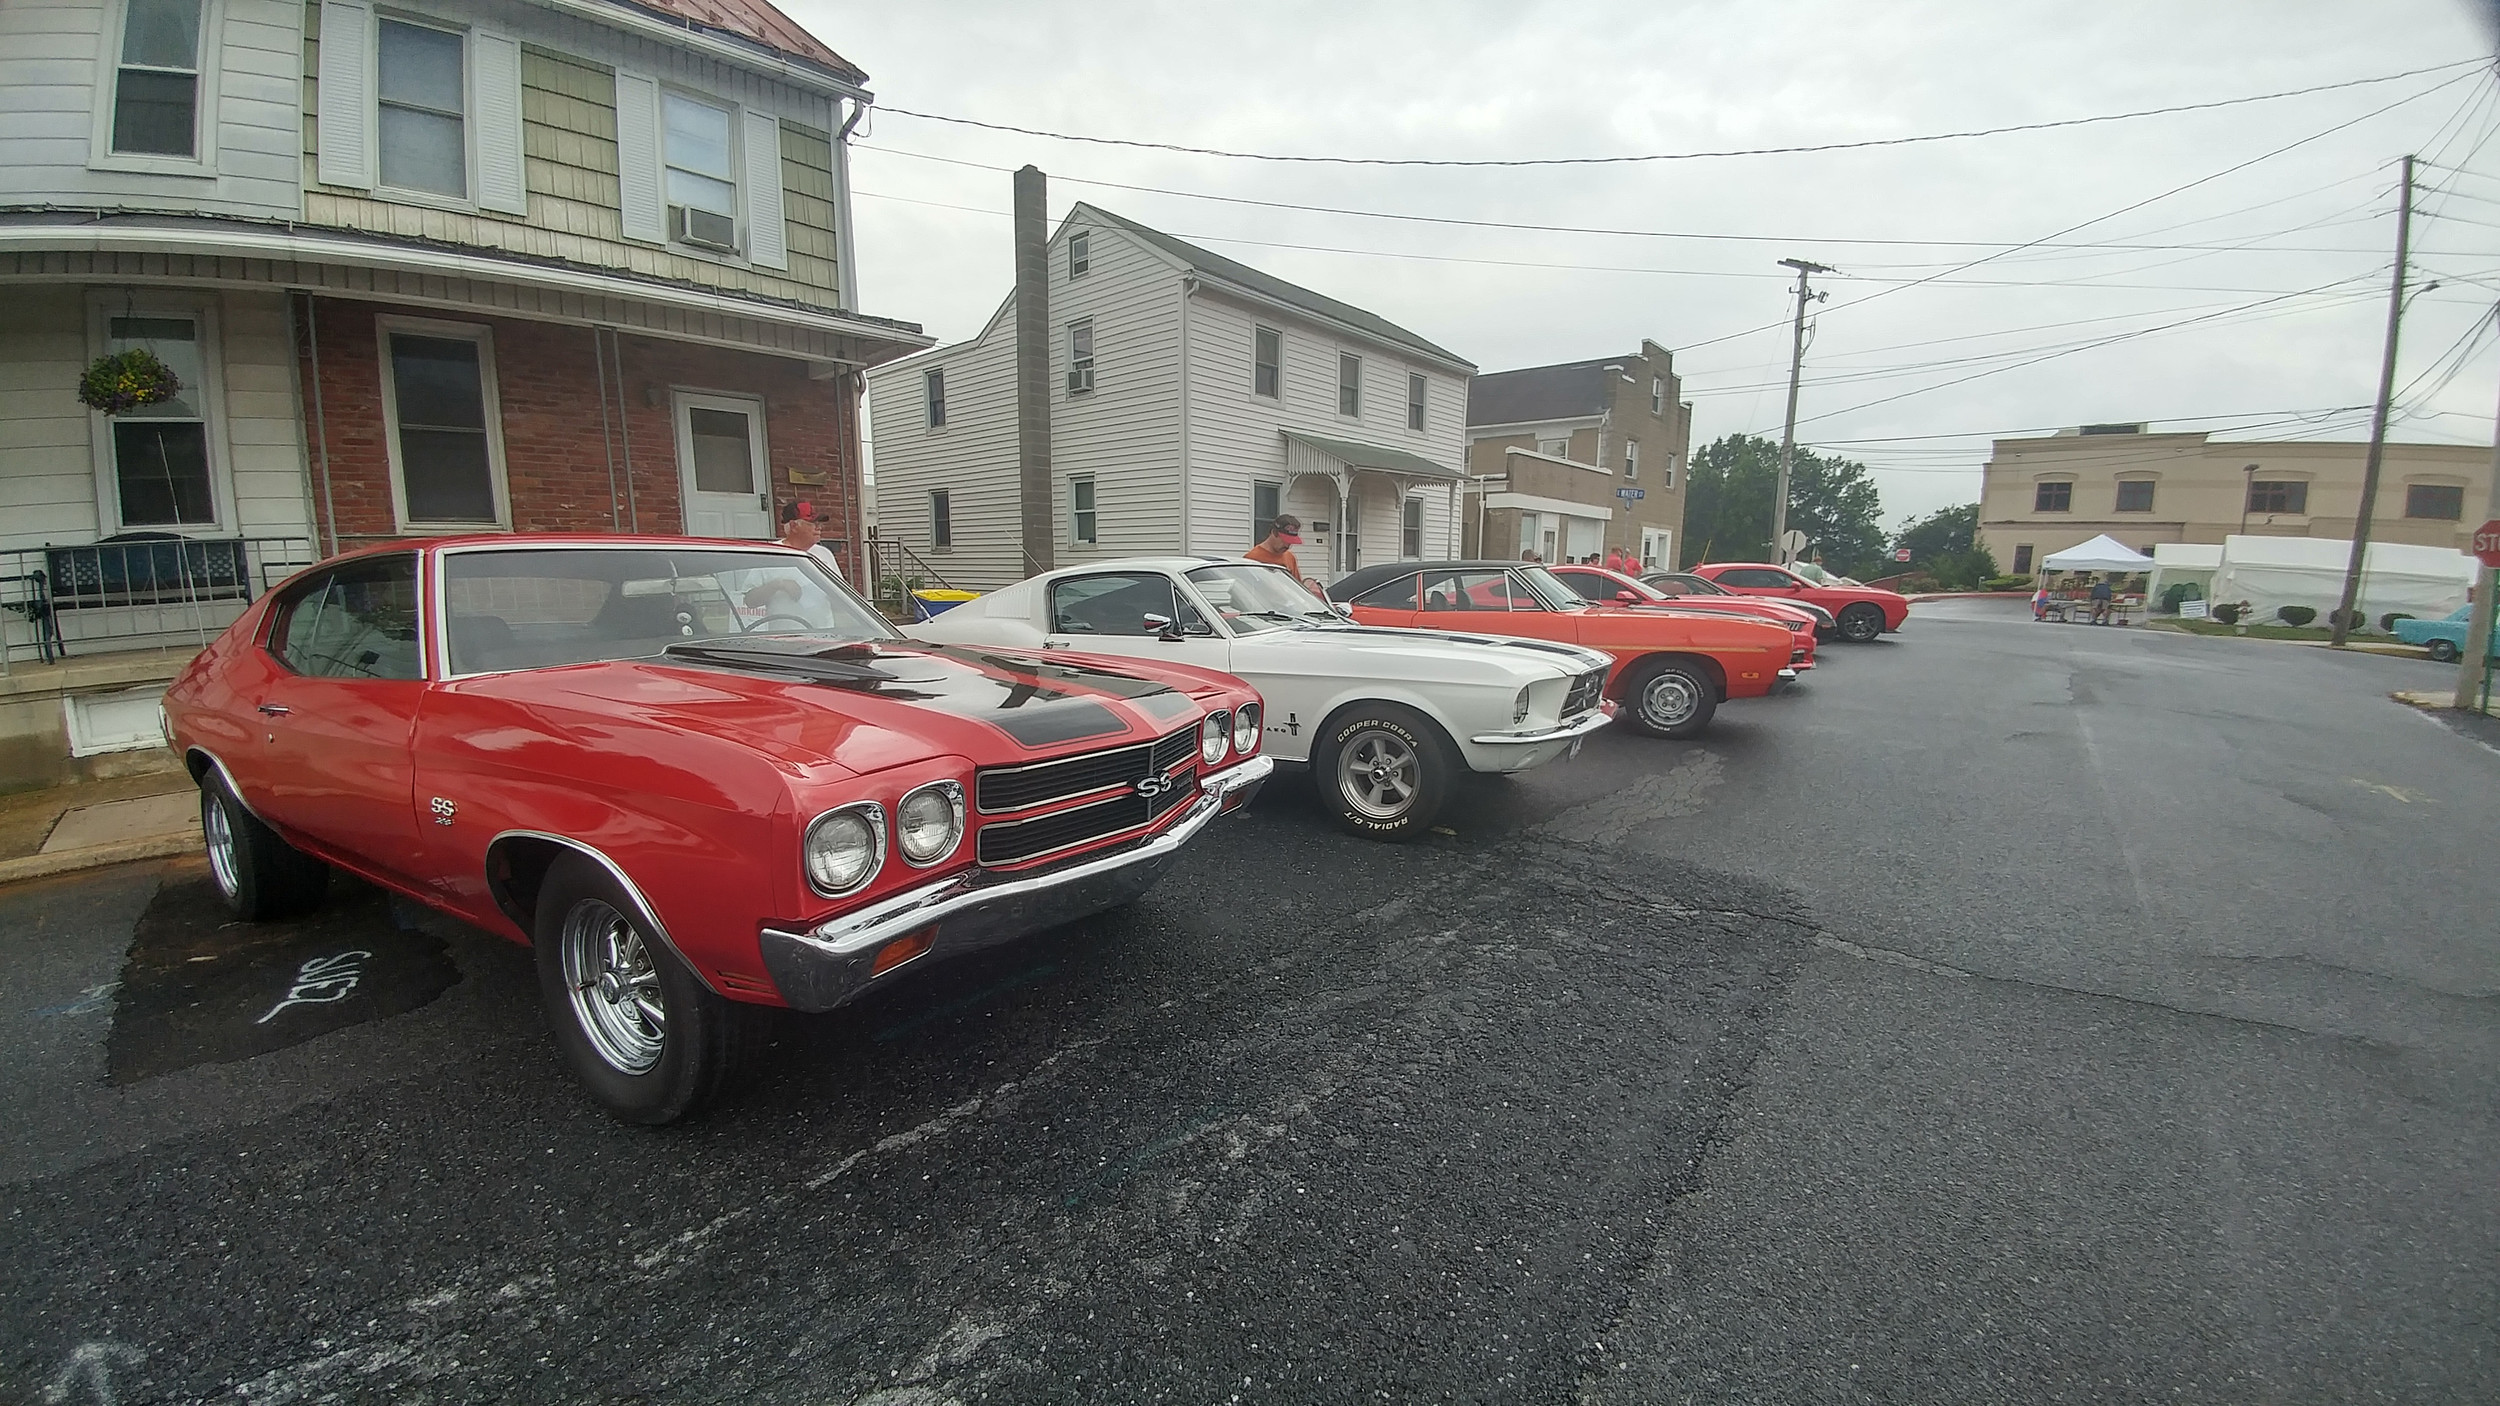 Old and new cars were on display despite late afternoon rain showers on Thursday.